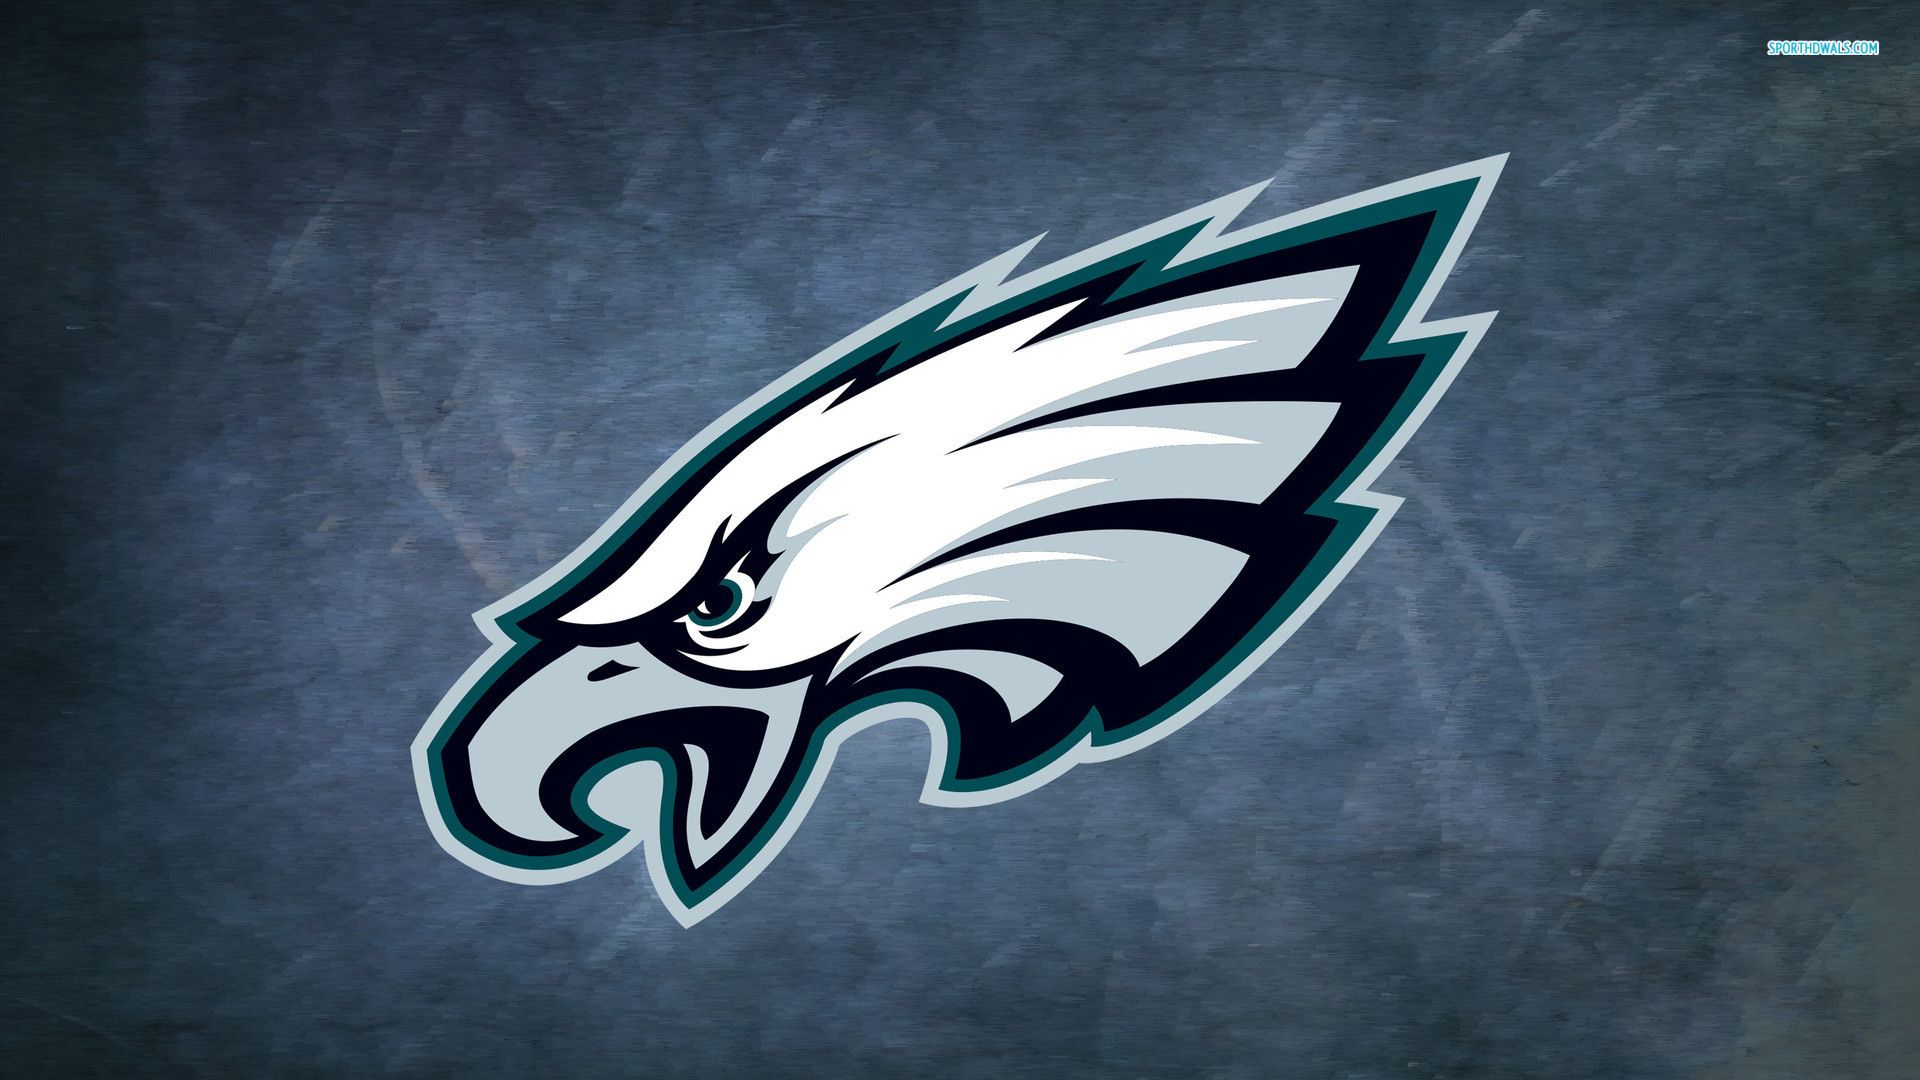 Download Eagles iphone wallpaper 1920x1080